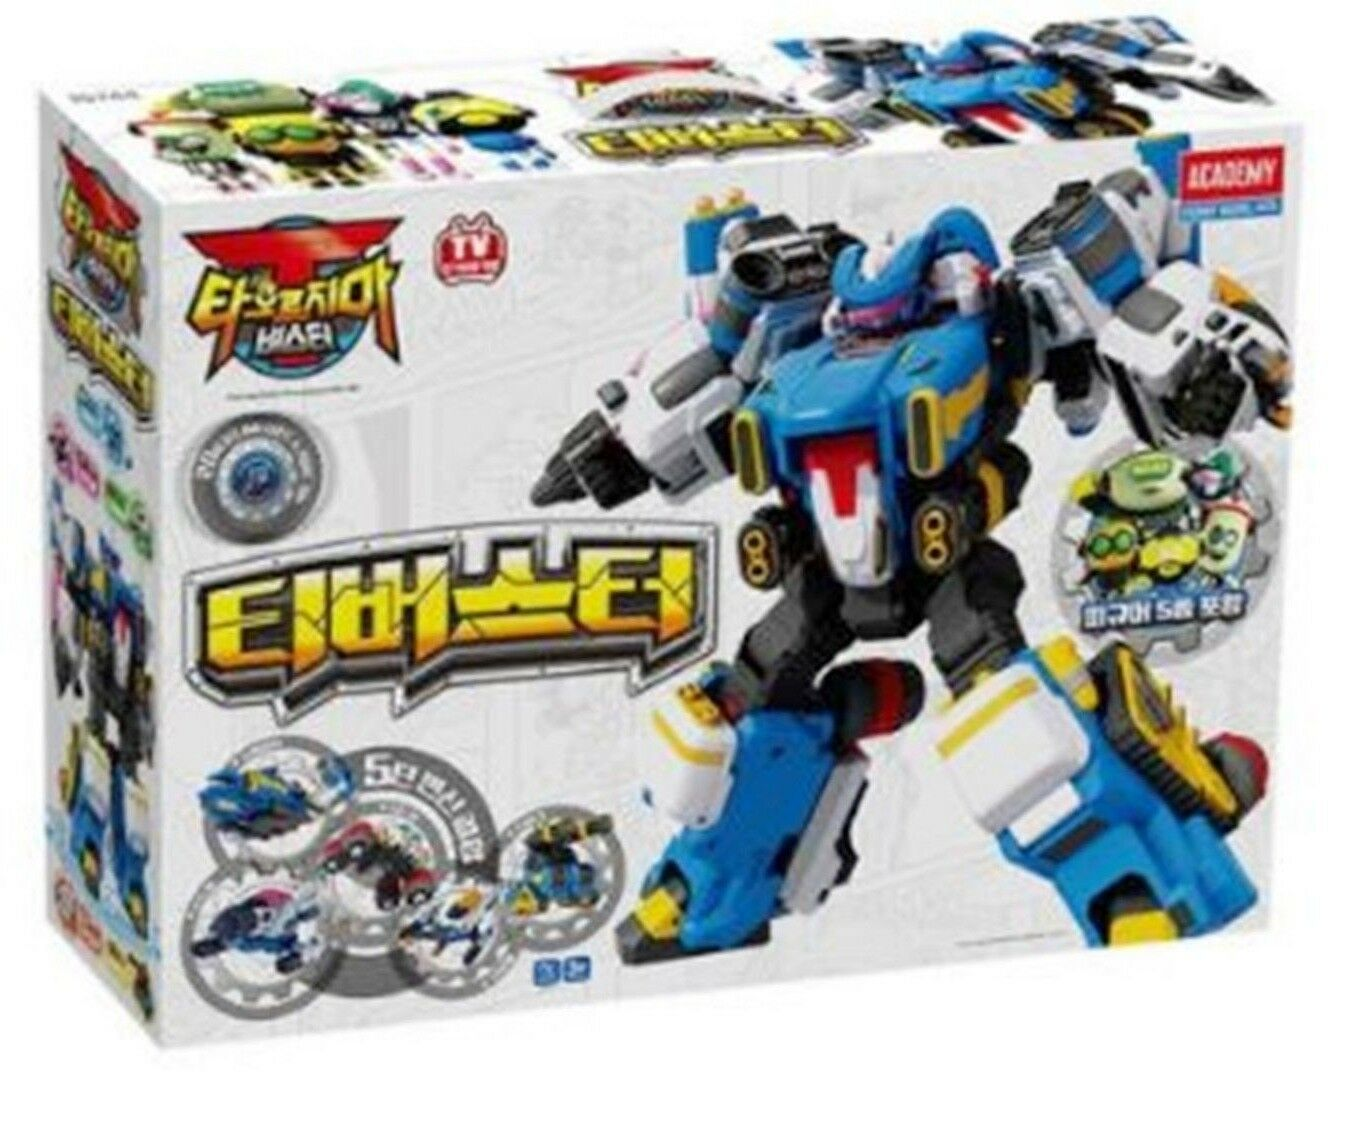 New Academy Taorjima T-BUSTER Copolymer Transforming Robot 5 vehicle Combine Toy